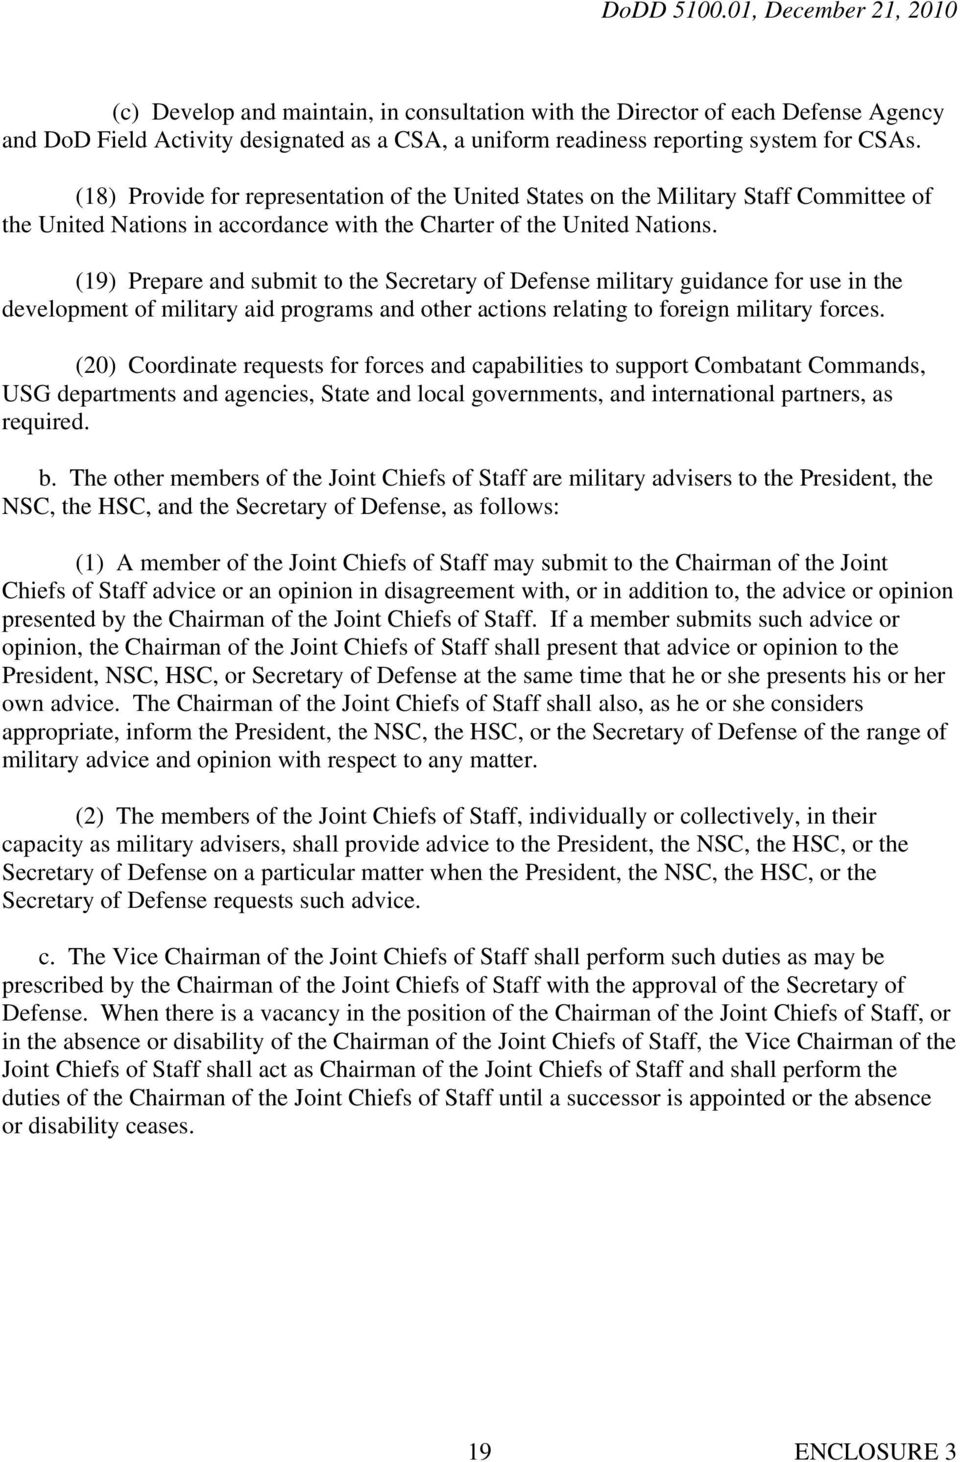 (19) Prepare and submit to the Secretary of Defense military guidance for use in the development of military aid programs and other actions relating to foreign military forces.